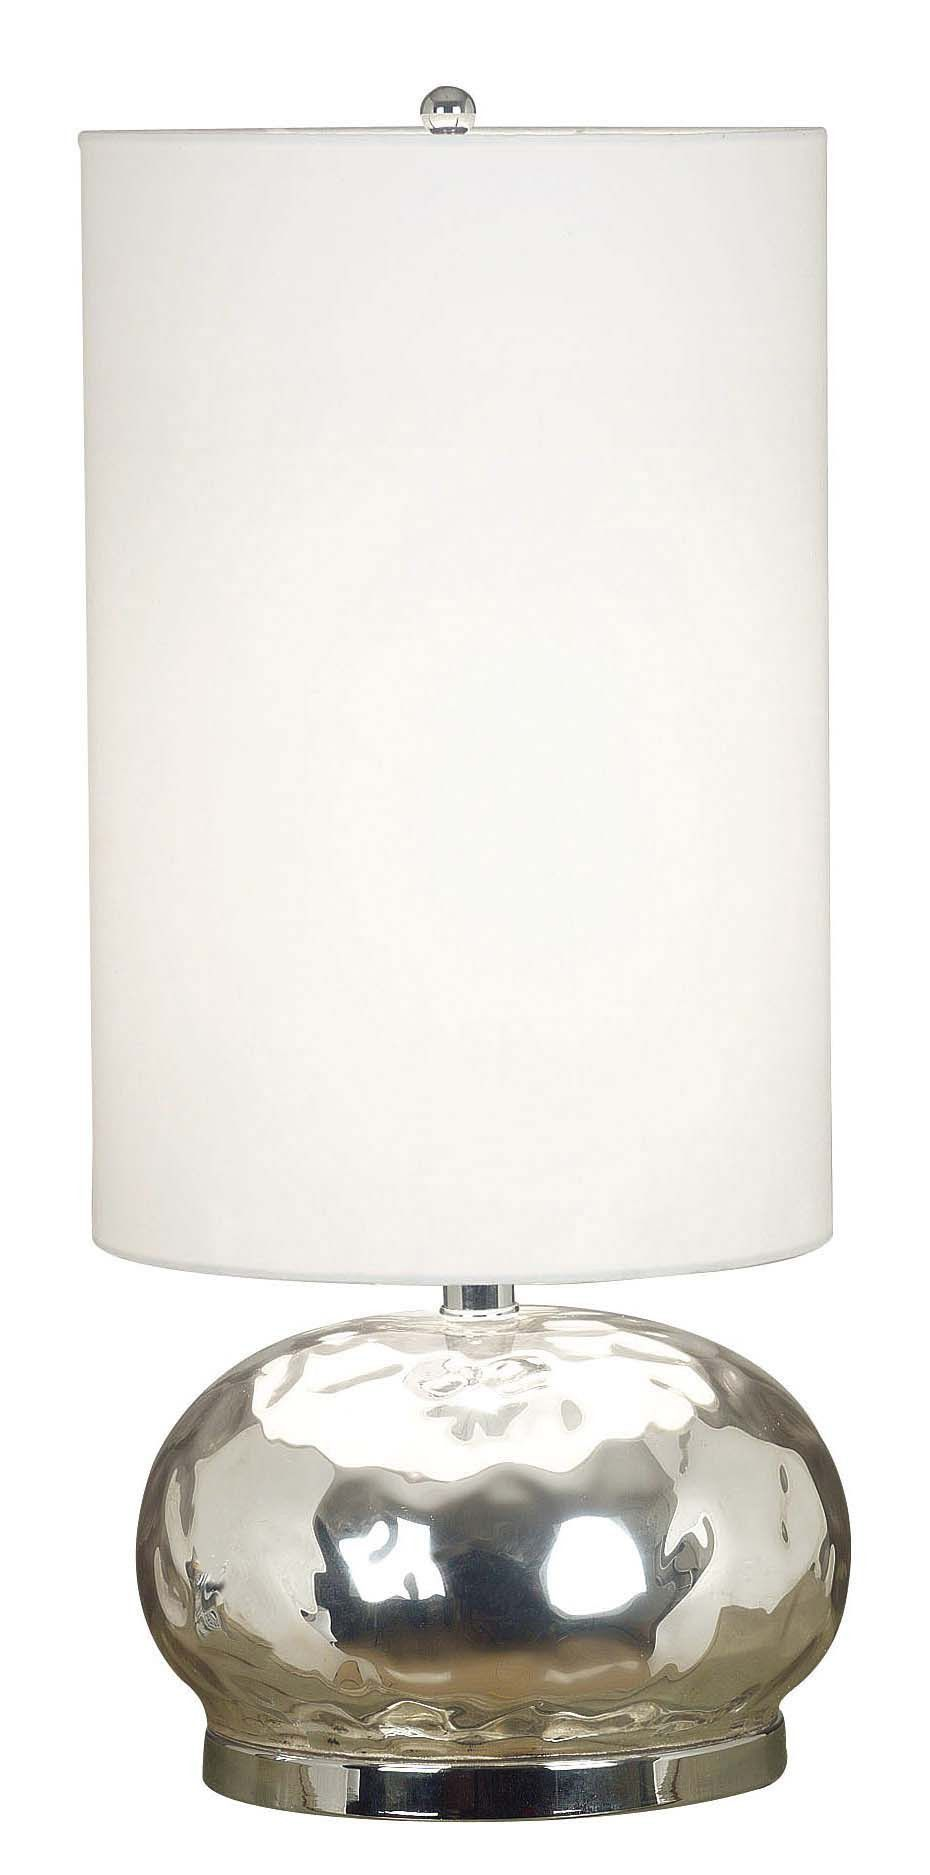 Roxie Table Lamp. Radiant, reflective Mercury Glass defines the spherical base of this contemporary lamp, giving it a romantic feel.  A tall White drum shade elongates and defines the shape.